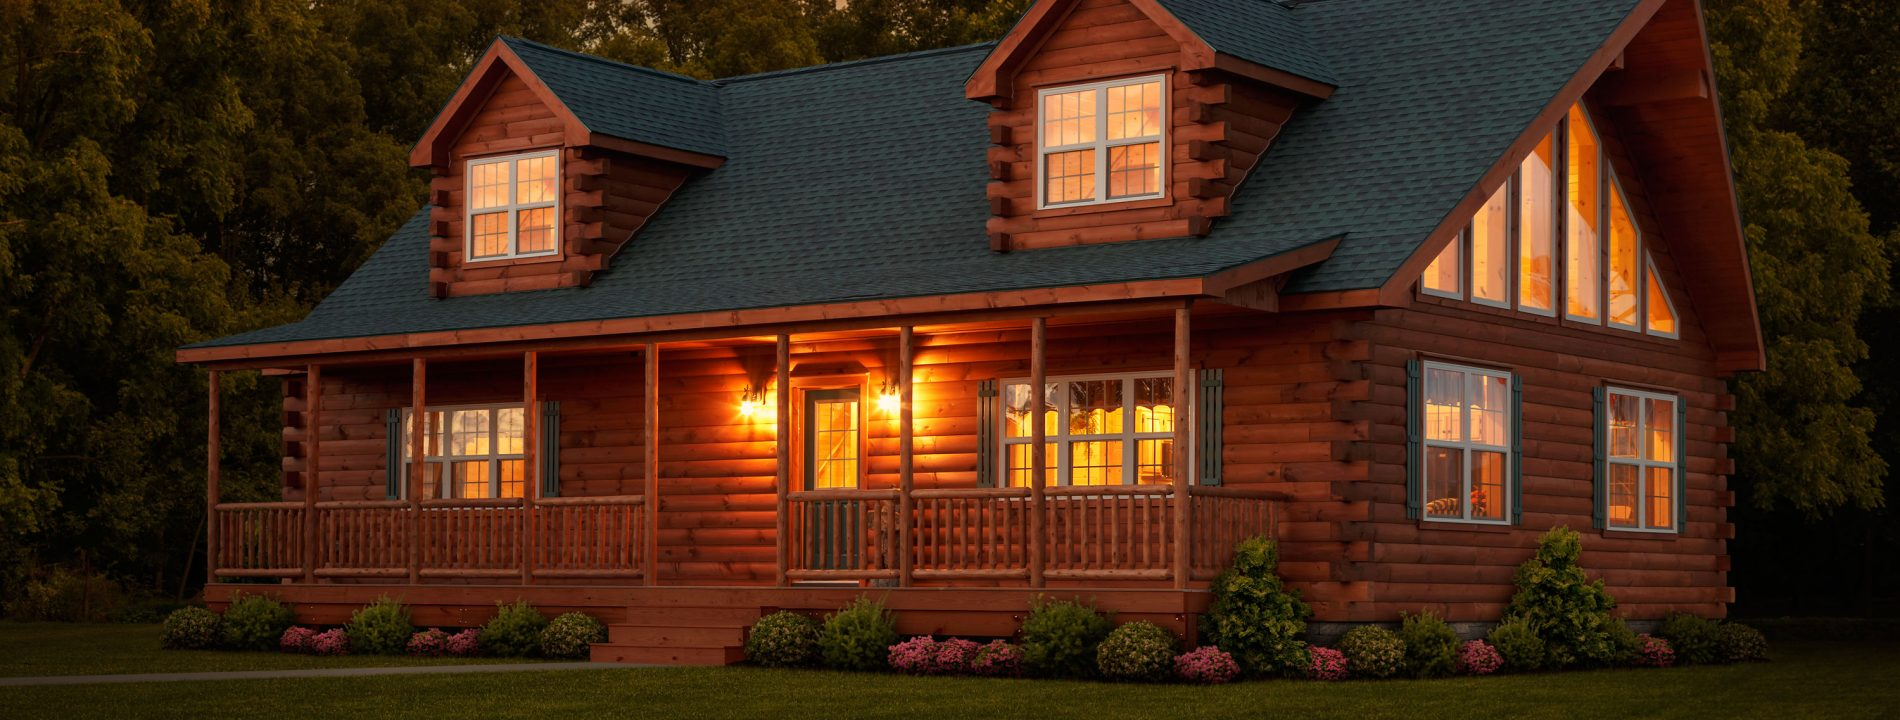 cozy log cabin home nighttime